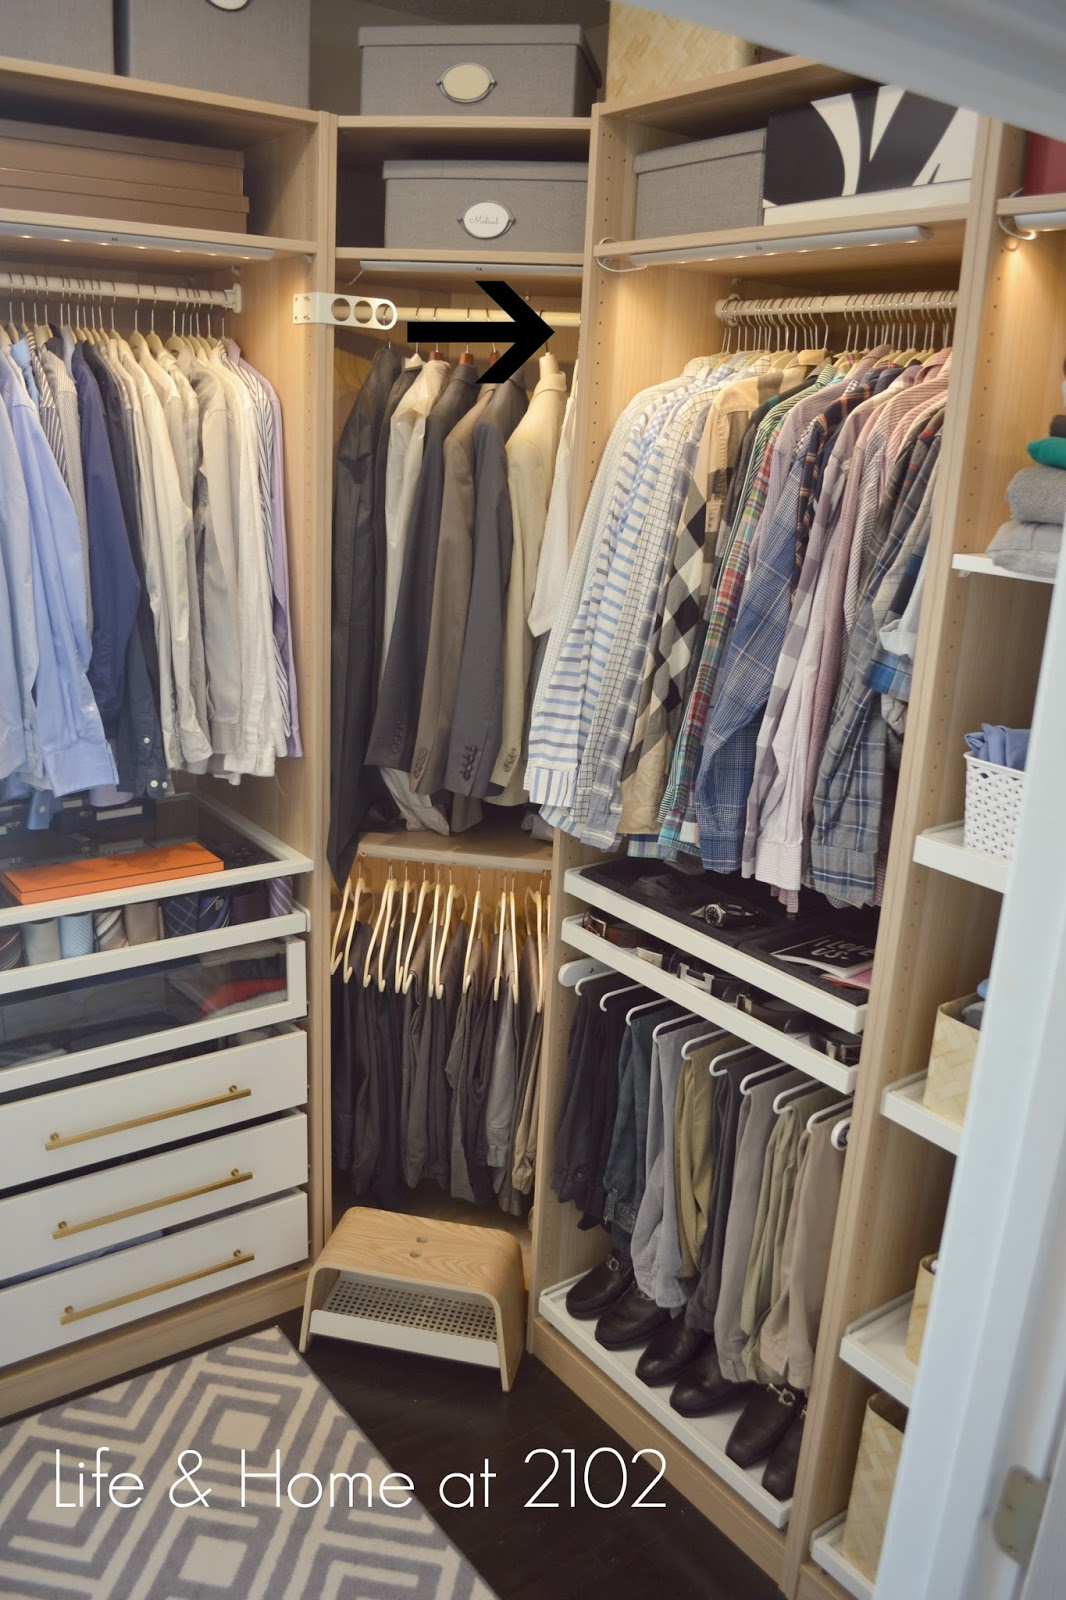 Life Amp Home At 2102 Guide To Building Your Own Closet Using The Ikea Pax System Design Details